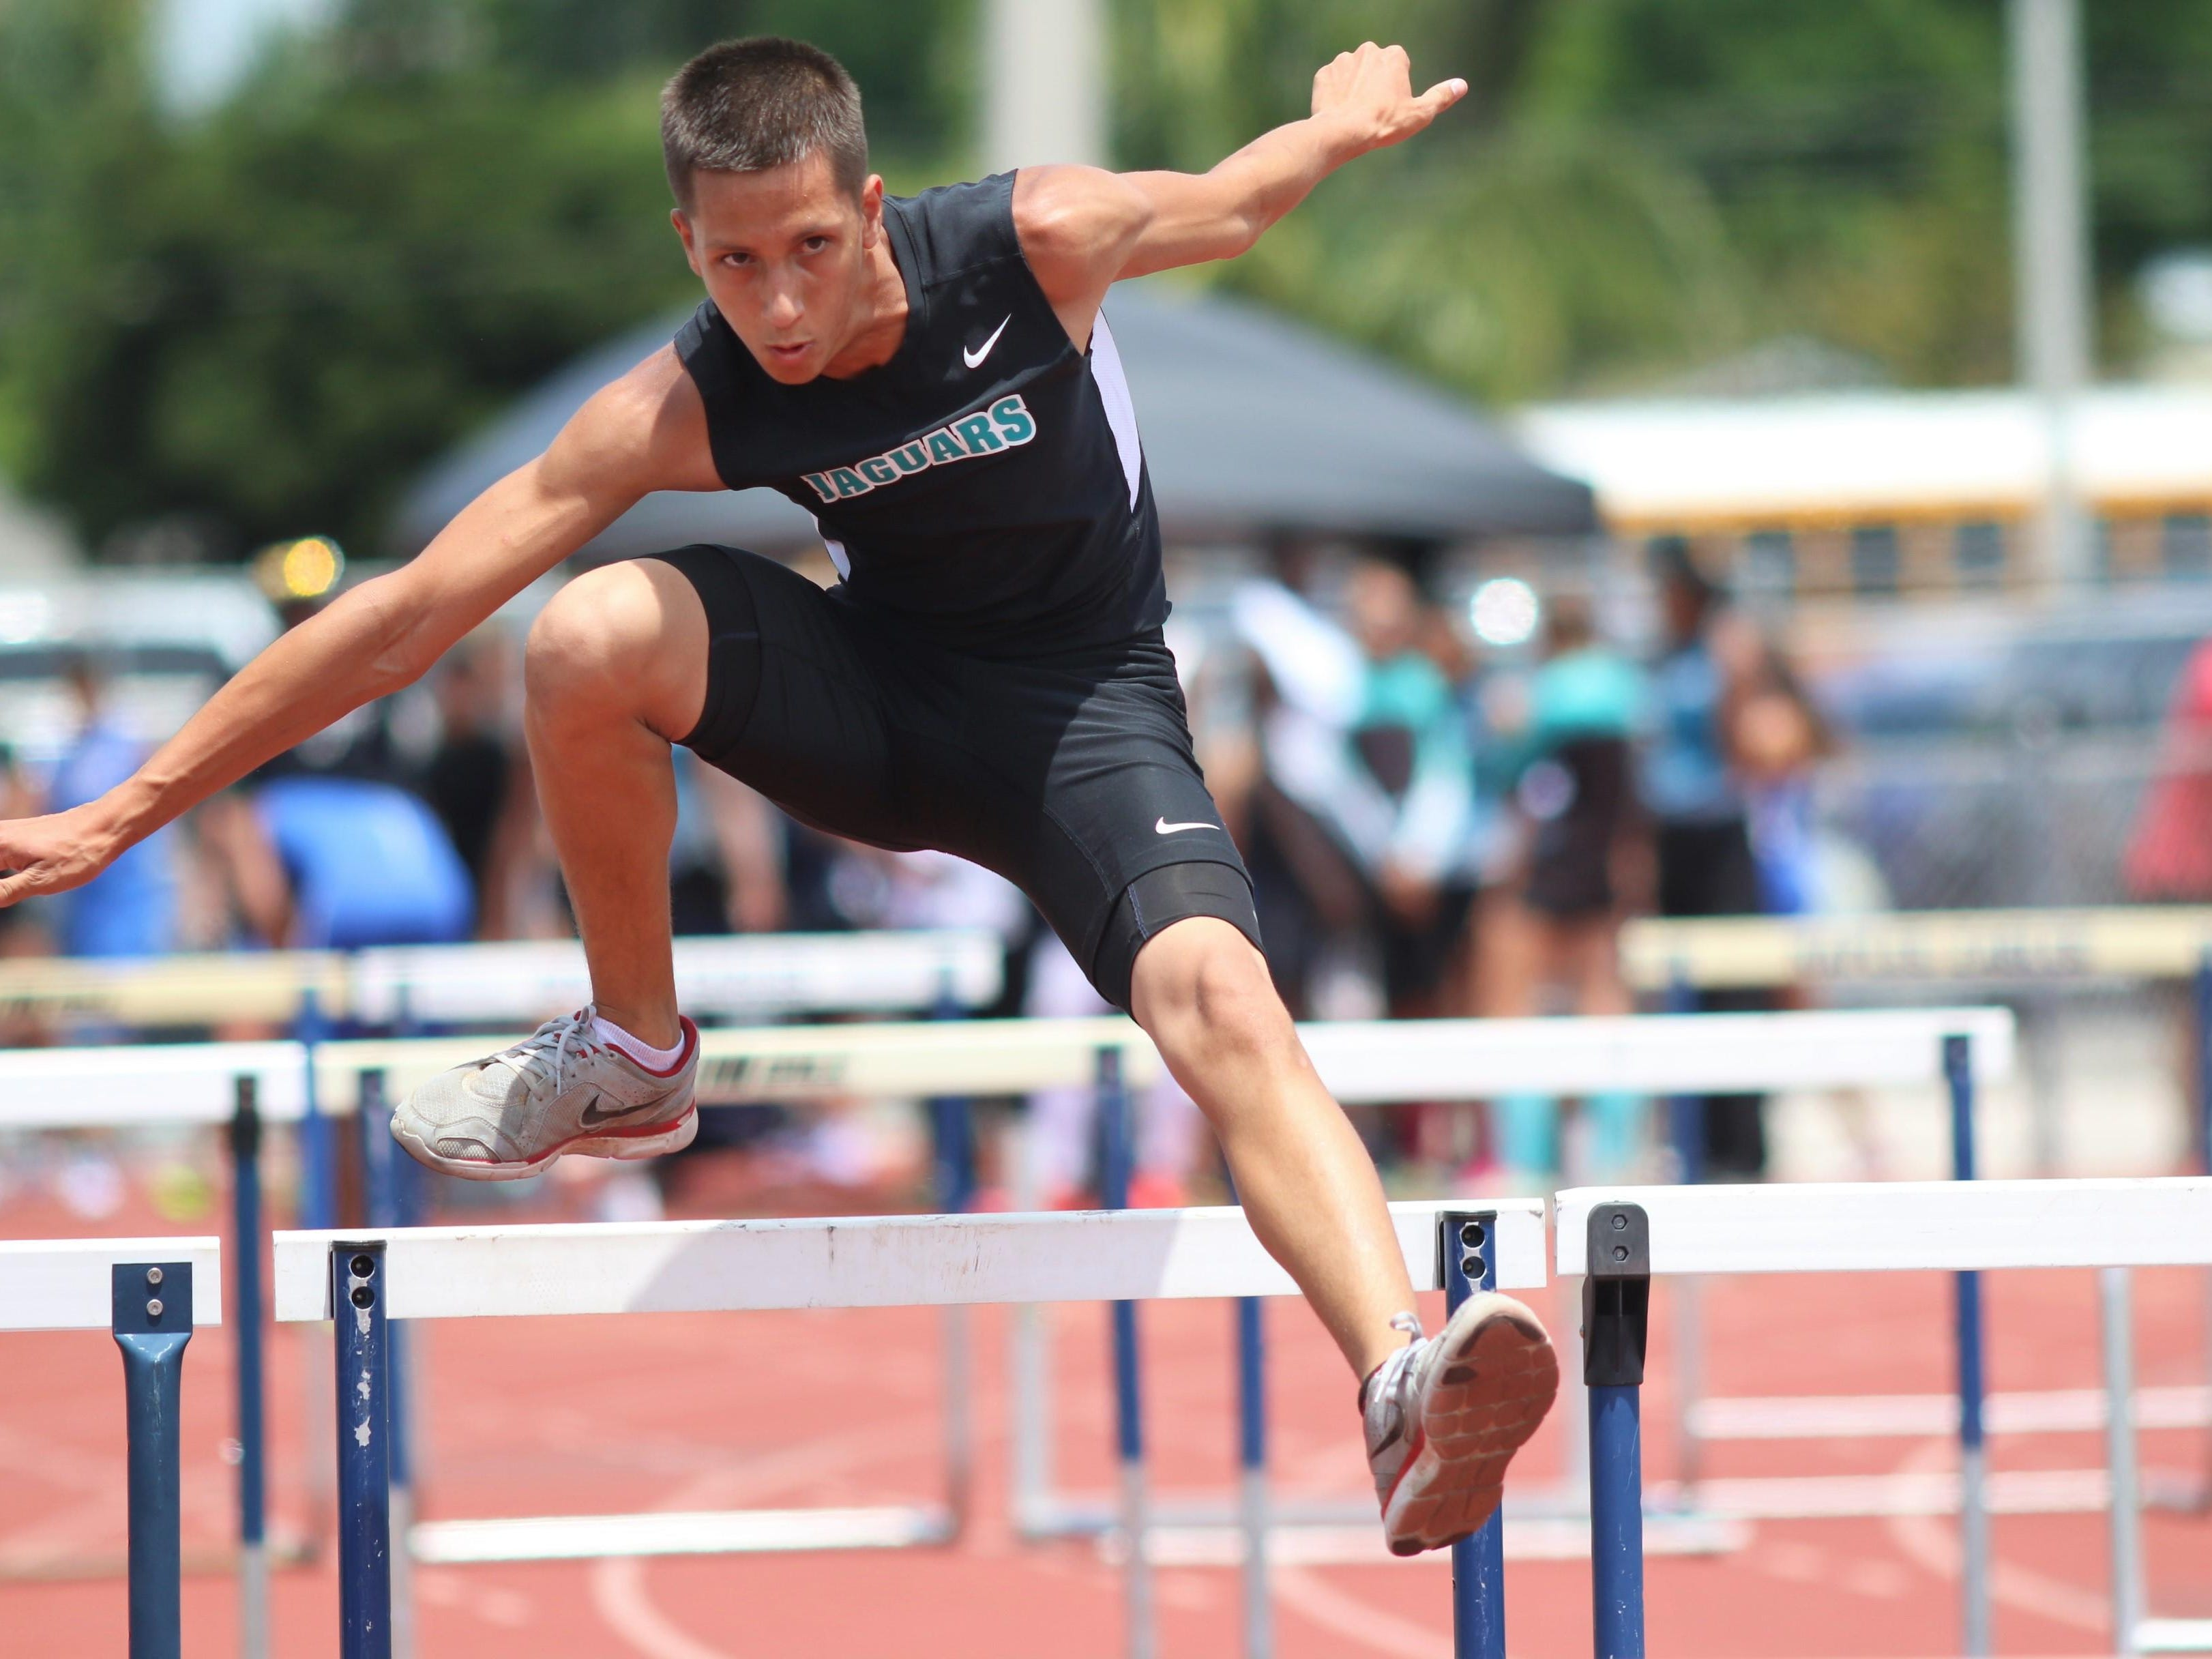 East Lee's David Garcia clears a hurdle during the 110-meter hurdle at Saturday's Class 3A District 12 track meet at Naples High.